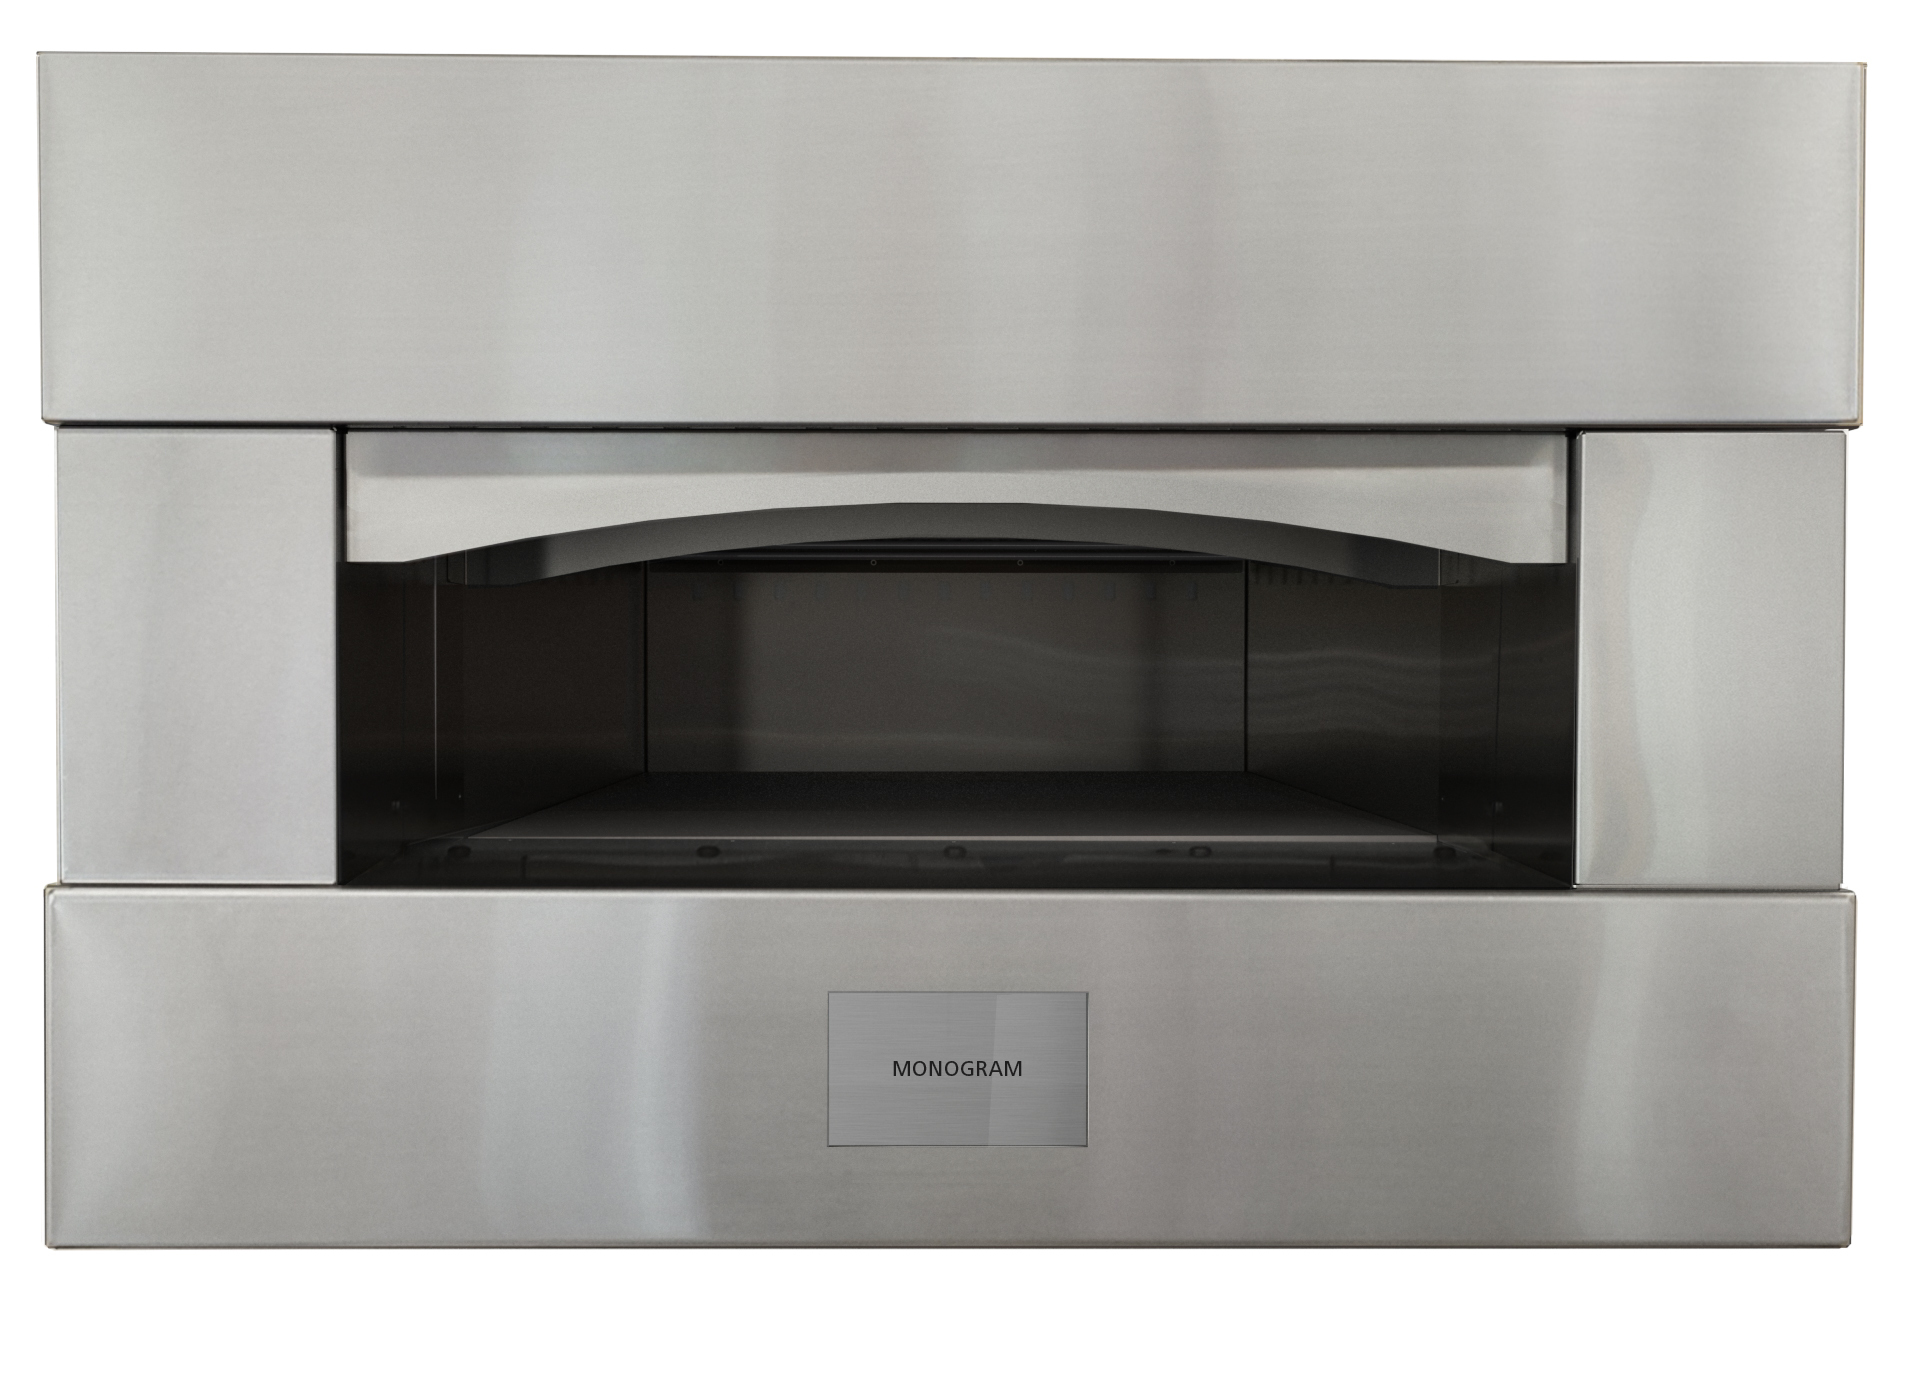 Captivating GE Monogram® Pizza Oven Brings Old World Flavor To The Luxury Modern Kitchen  | Business Wire